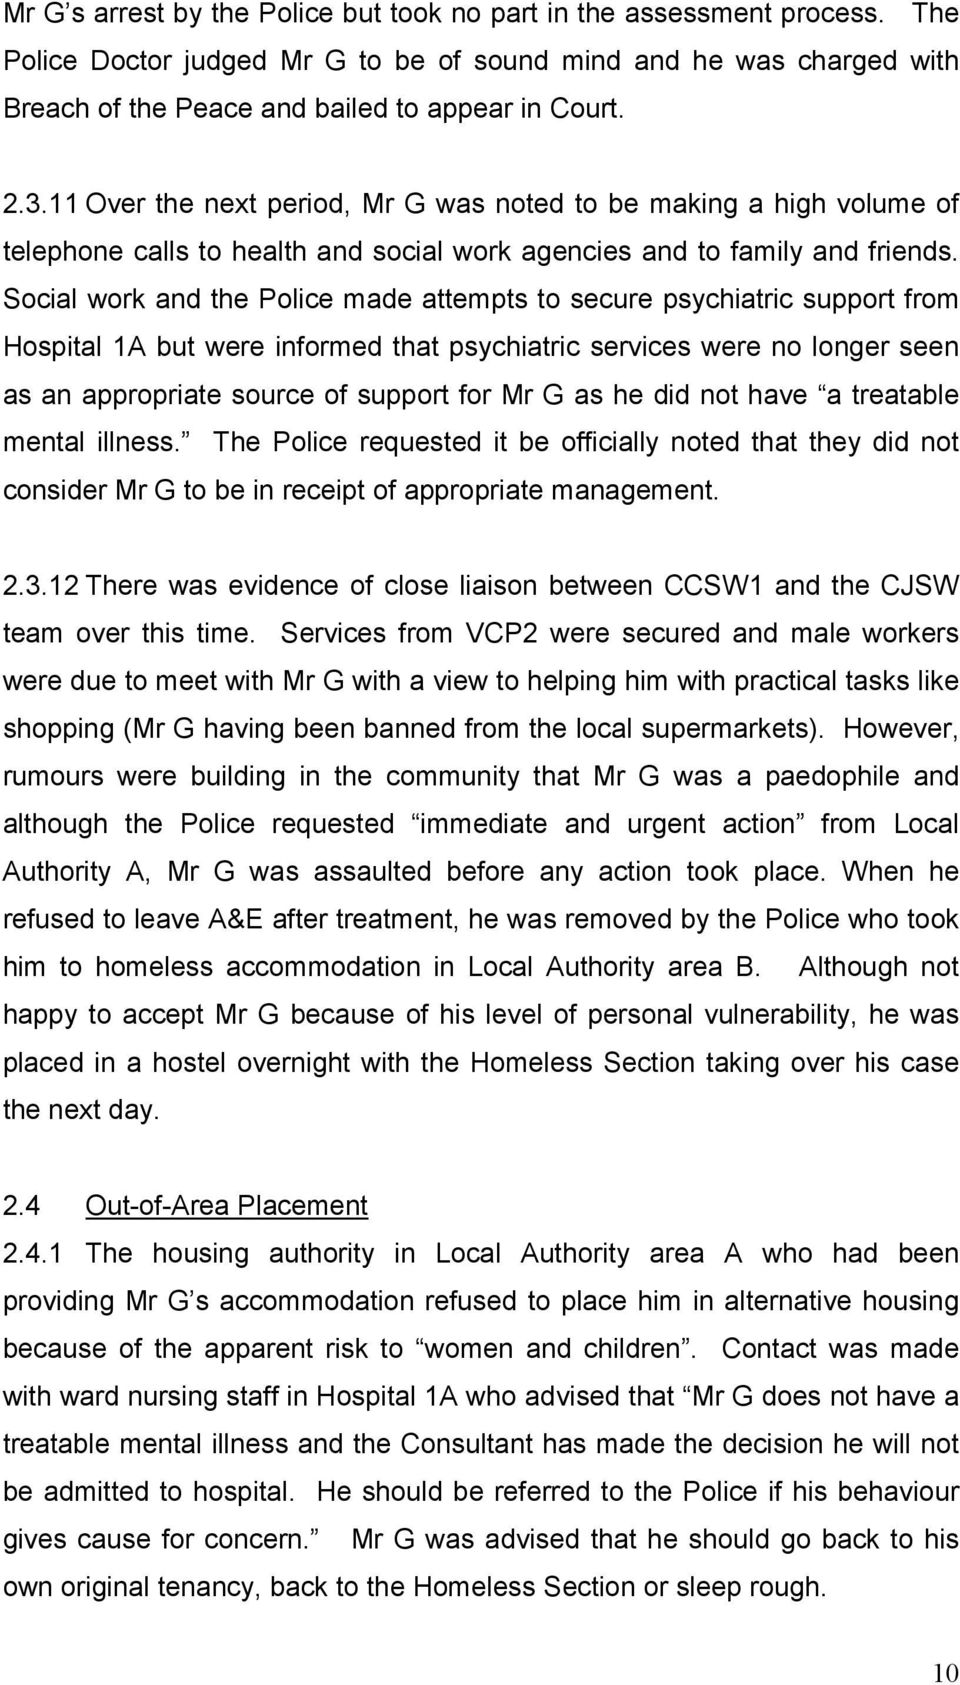 Social work and the Police made attempts to secure psychiatric support from Hospital 1A but were informed that psychiatric services were no longer seen as an appropriate source of support for Mr G as